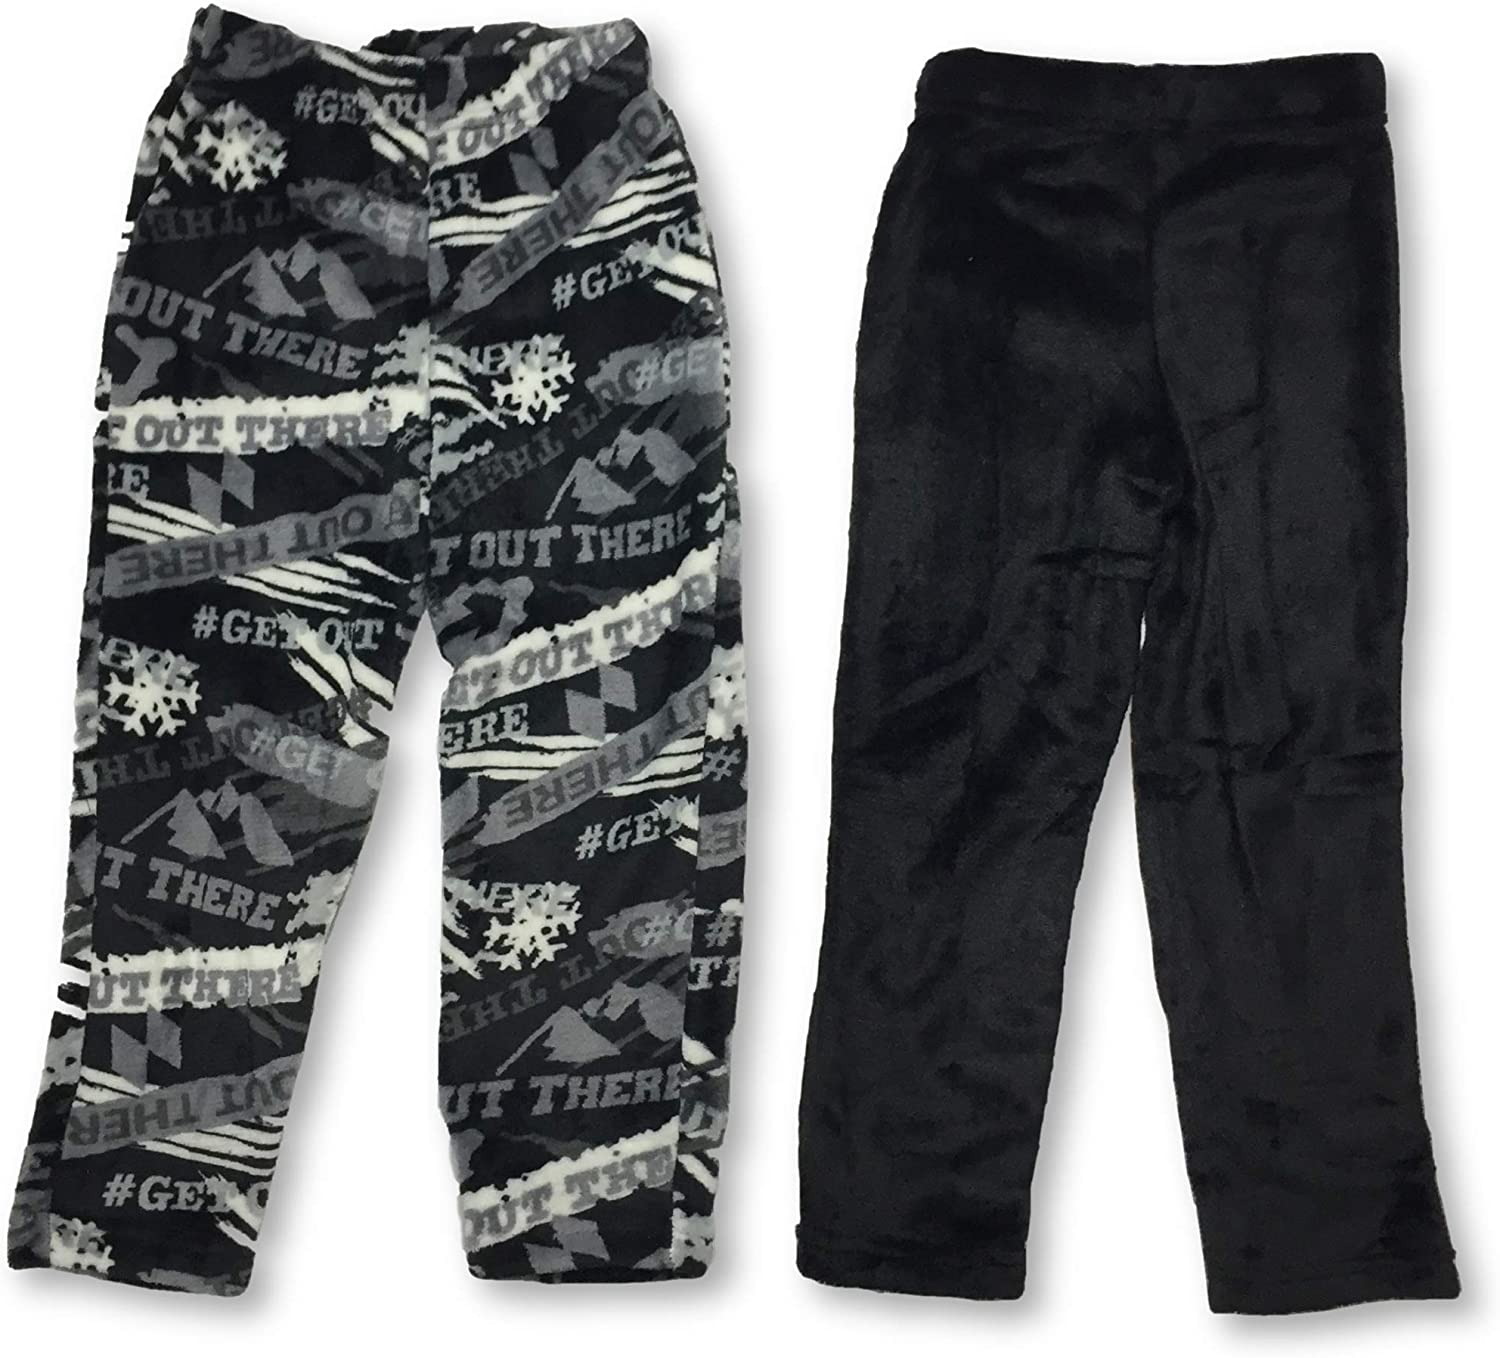 Butter Pile Lazy Day Boy's Pants Set of 2 (X-Small 5/6) Black